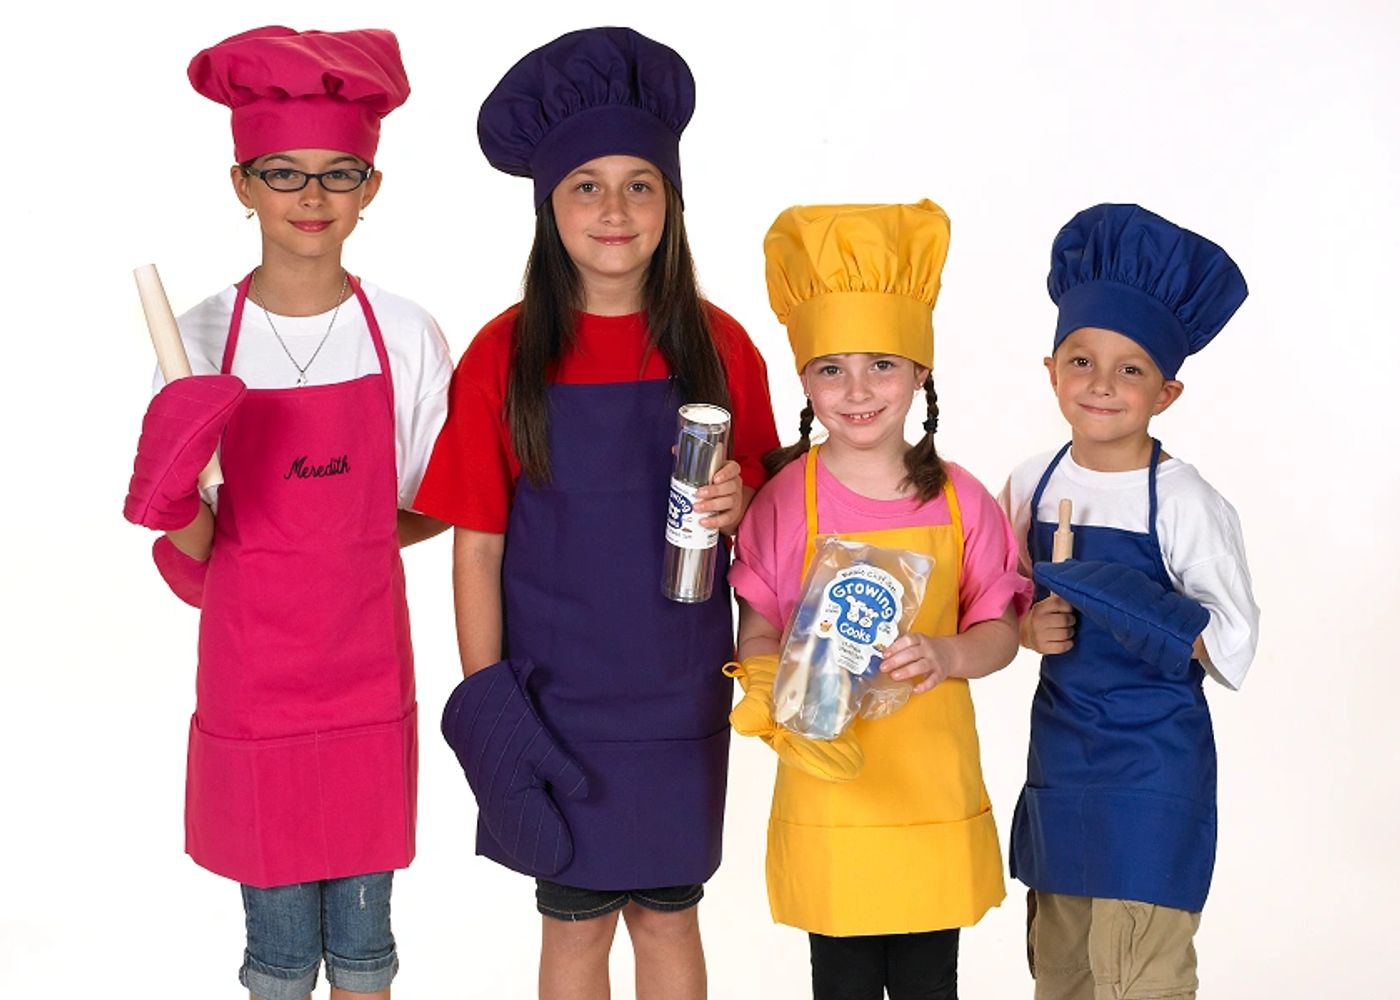 Kids Aprons, Personalized Kids Aprons, Kids Chef Hats, Kids Chef Coats, Children's Aprons, Kid Chef